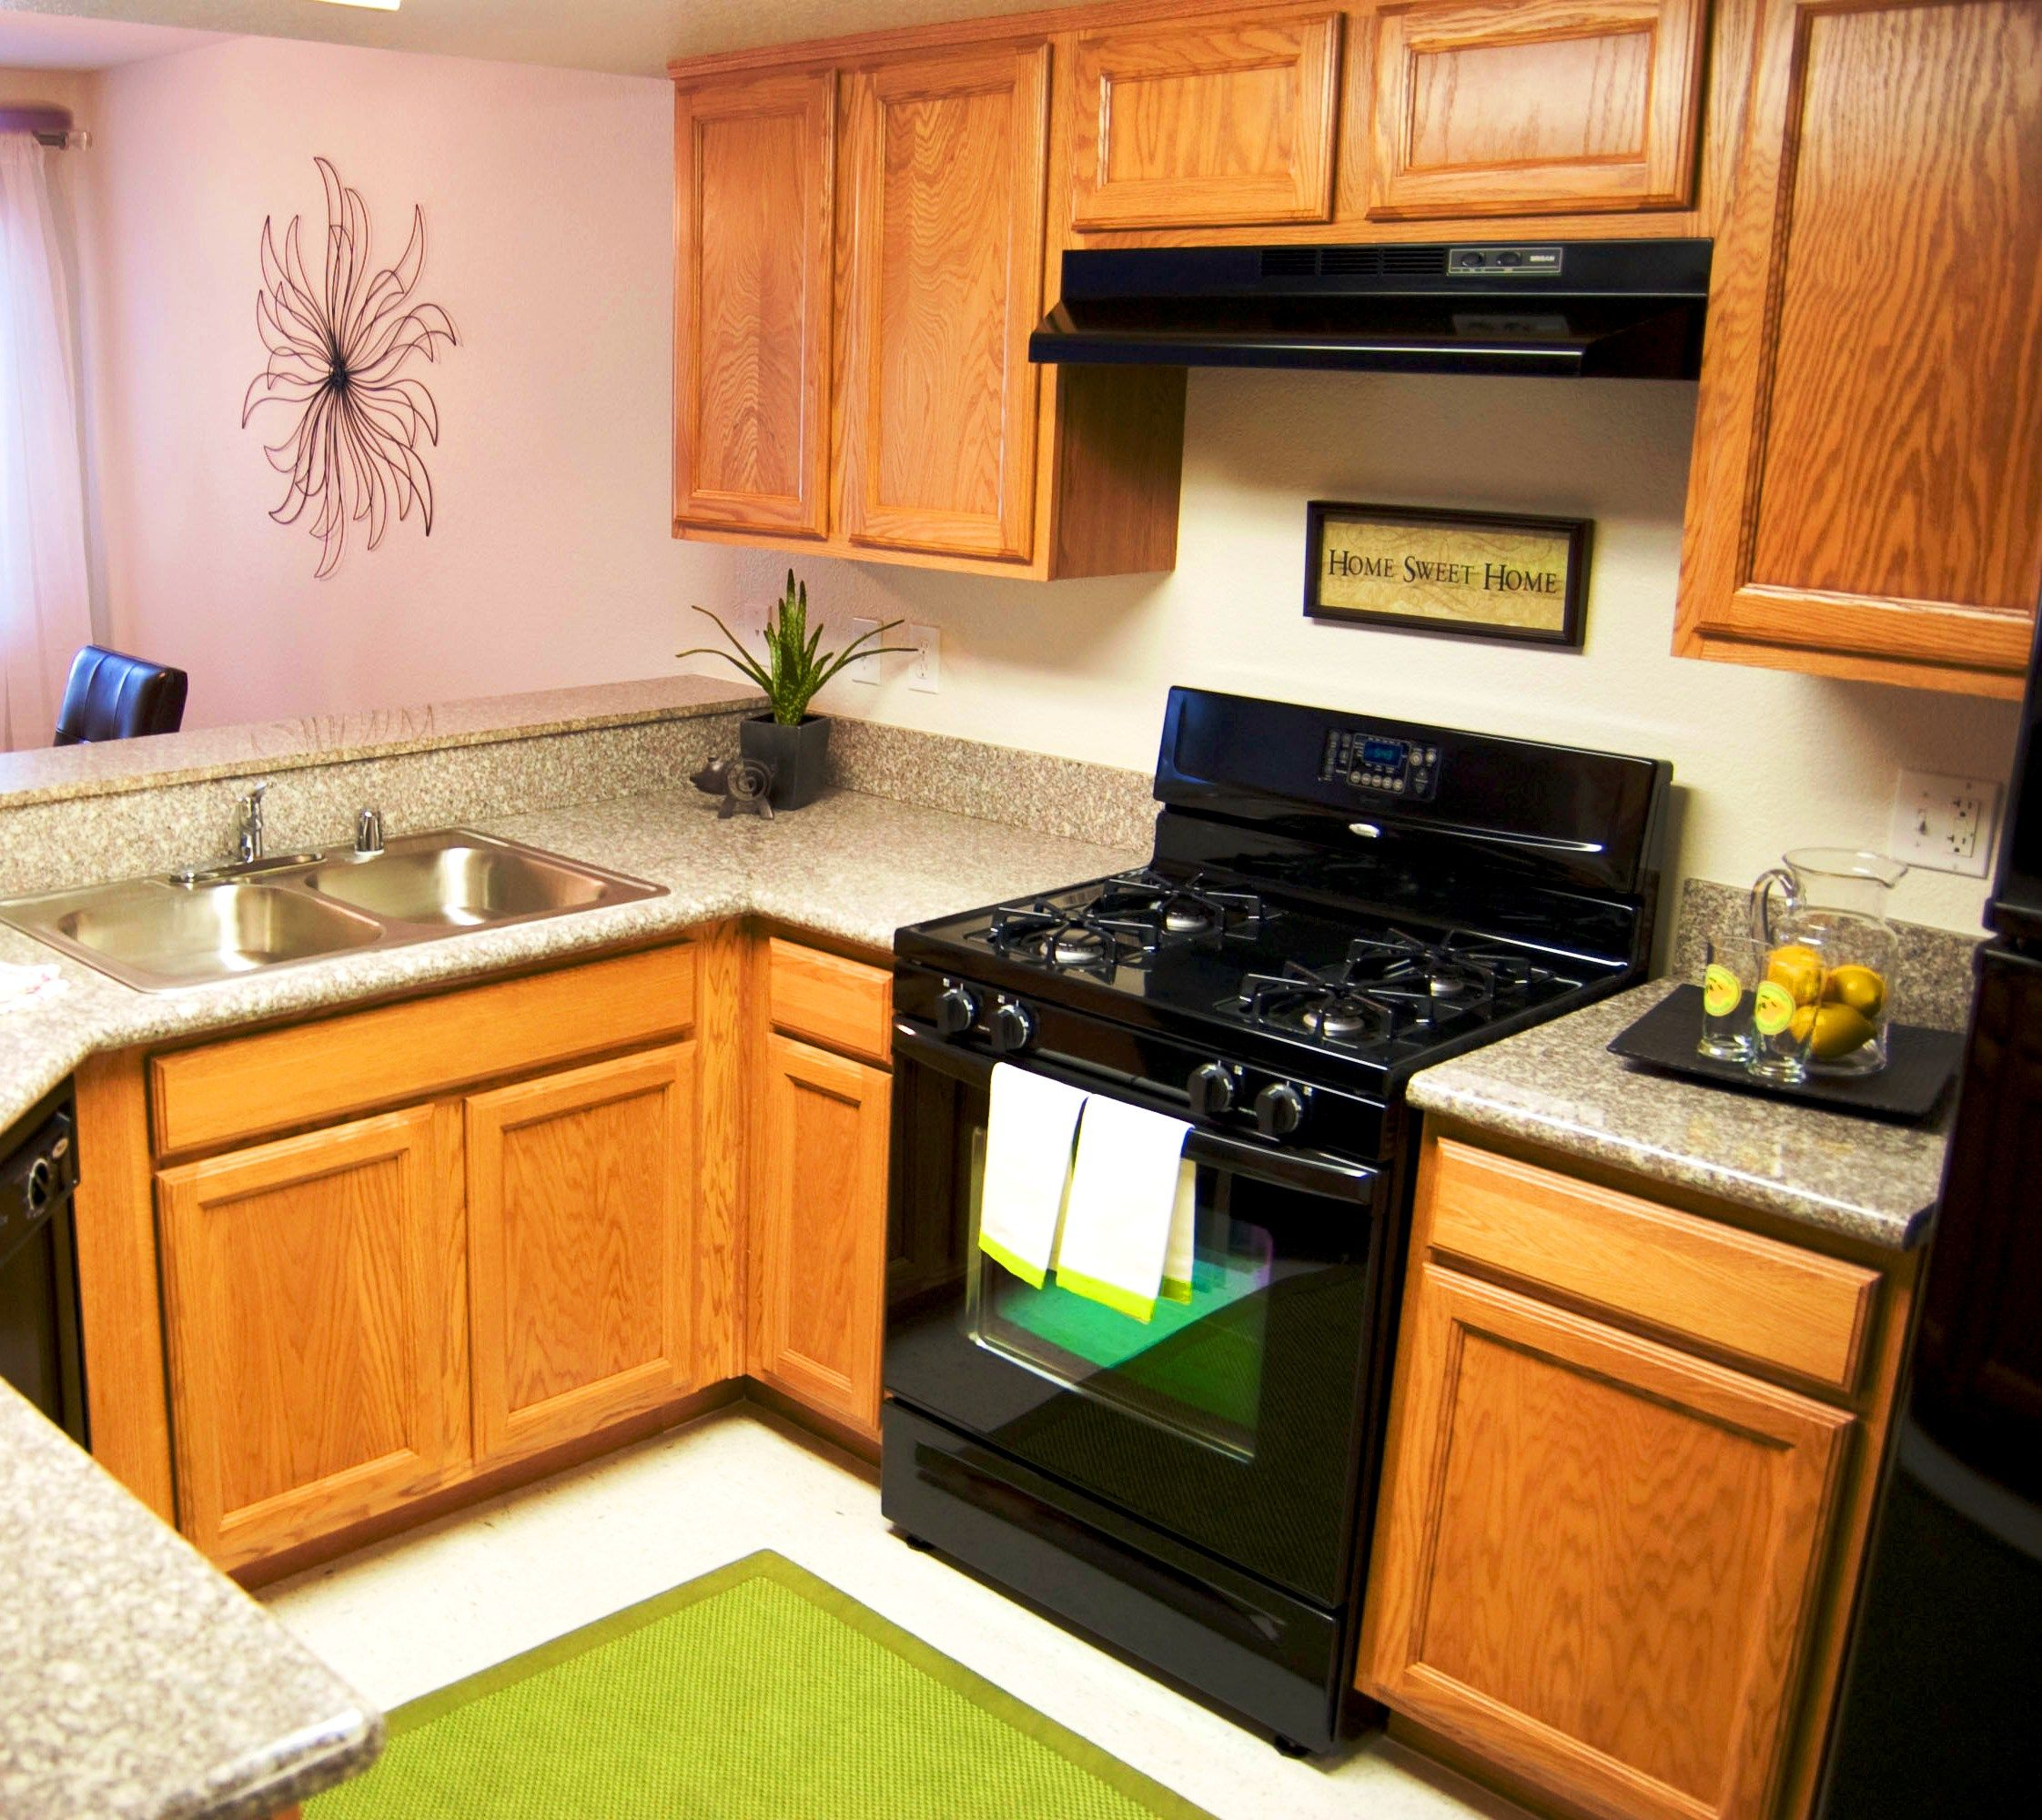 Beautiful, modern kitchen with a brand new gas stove top